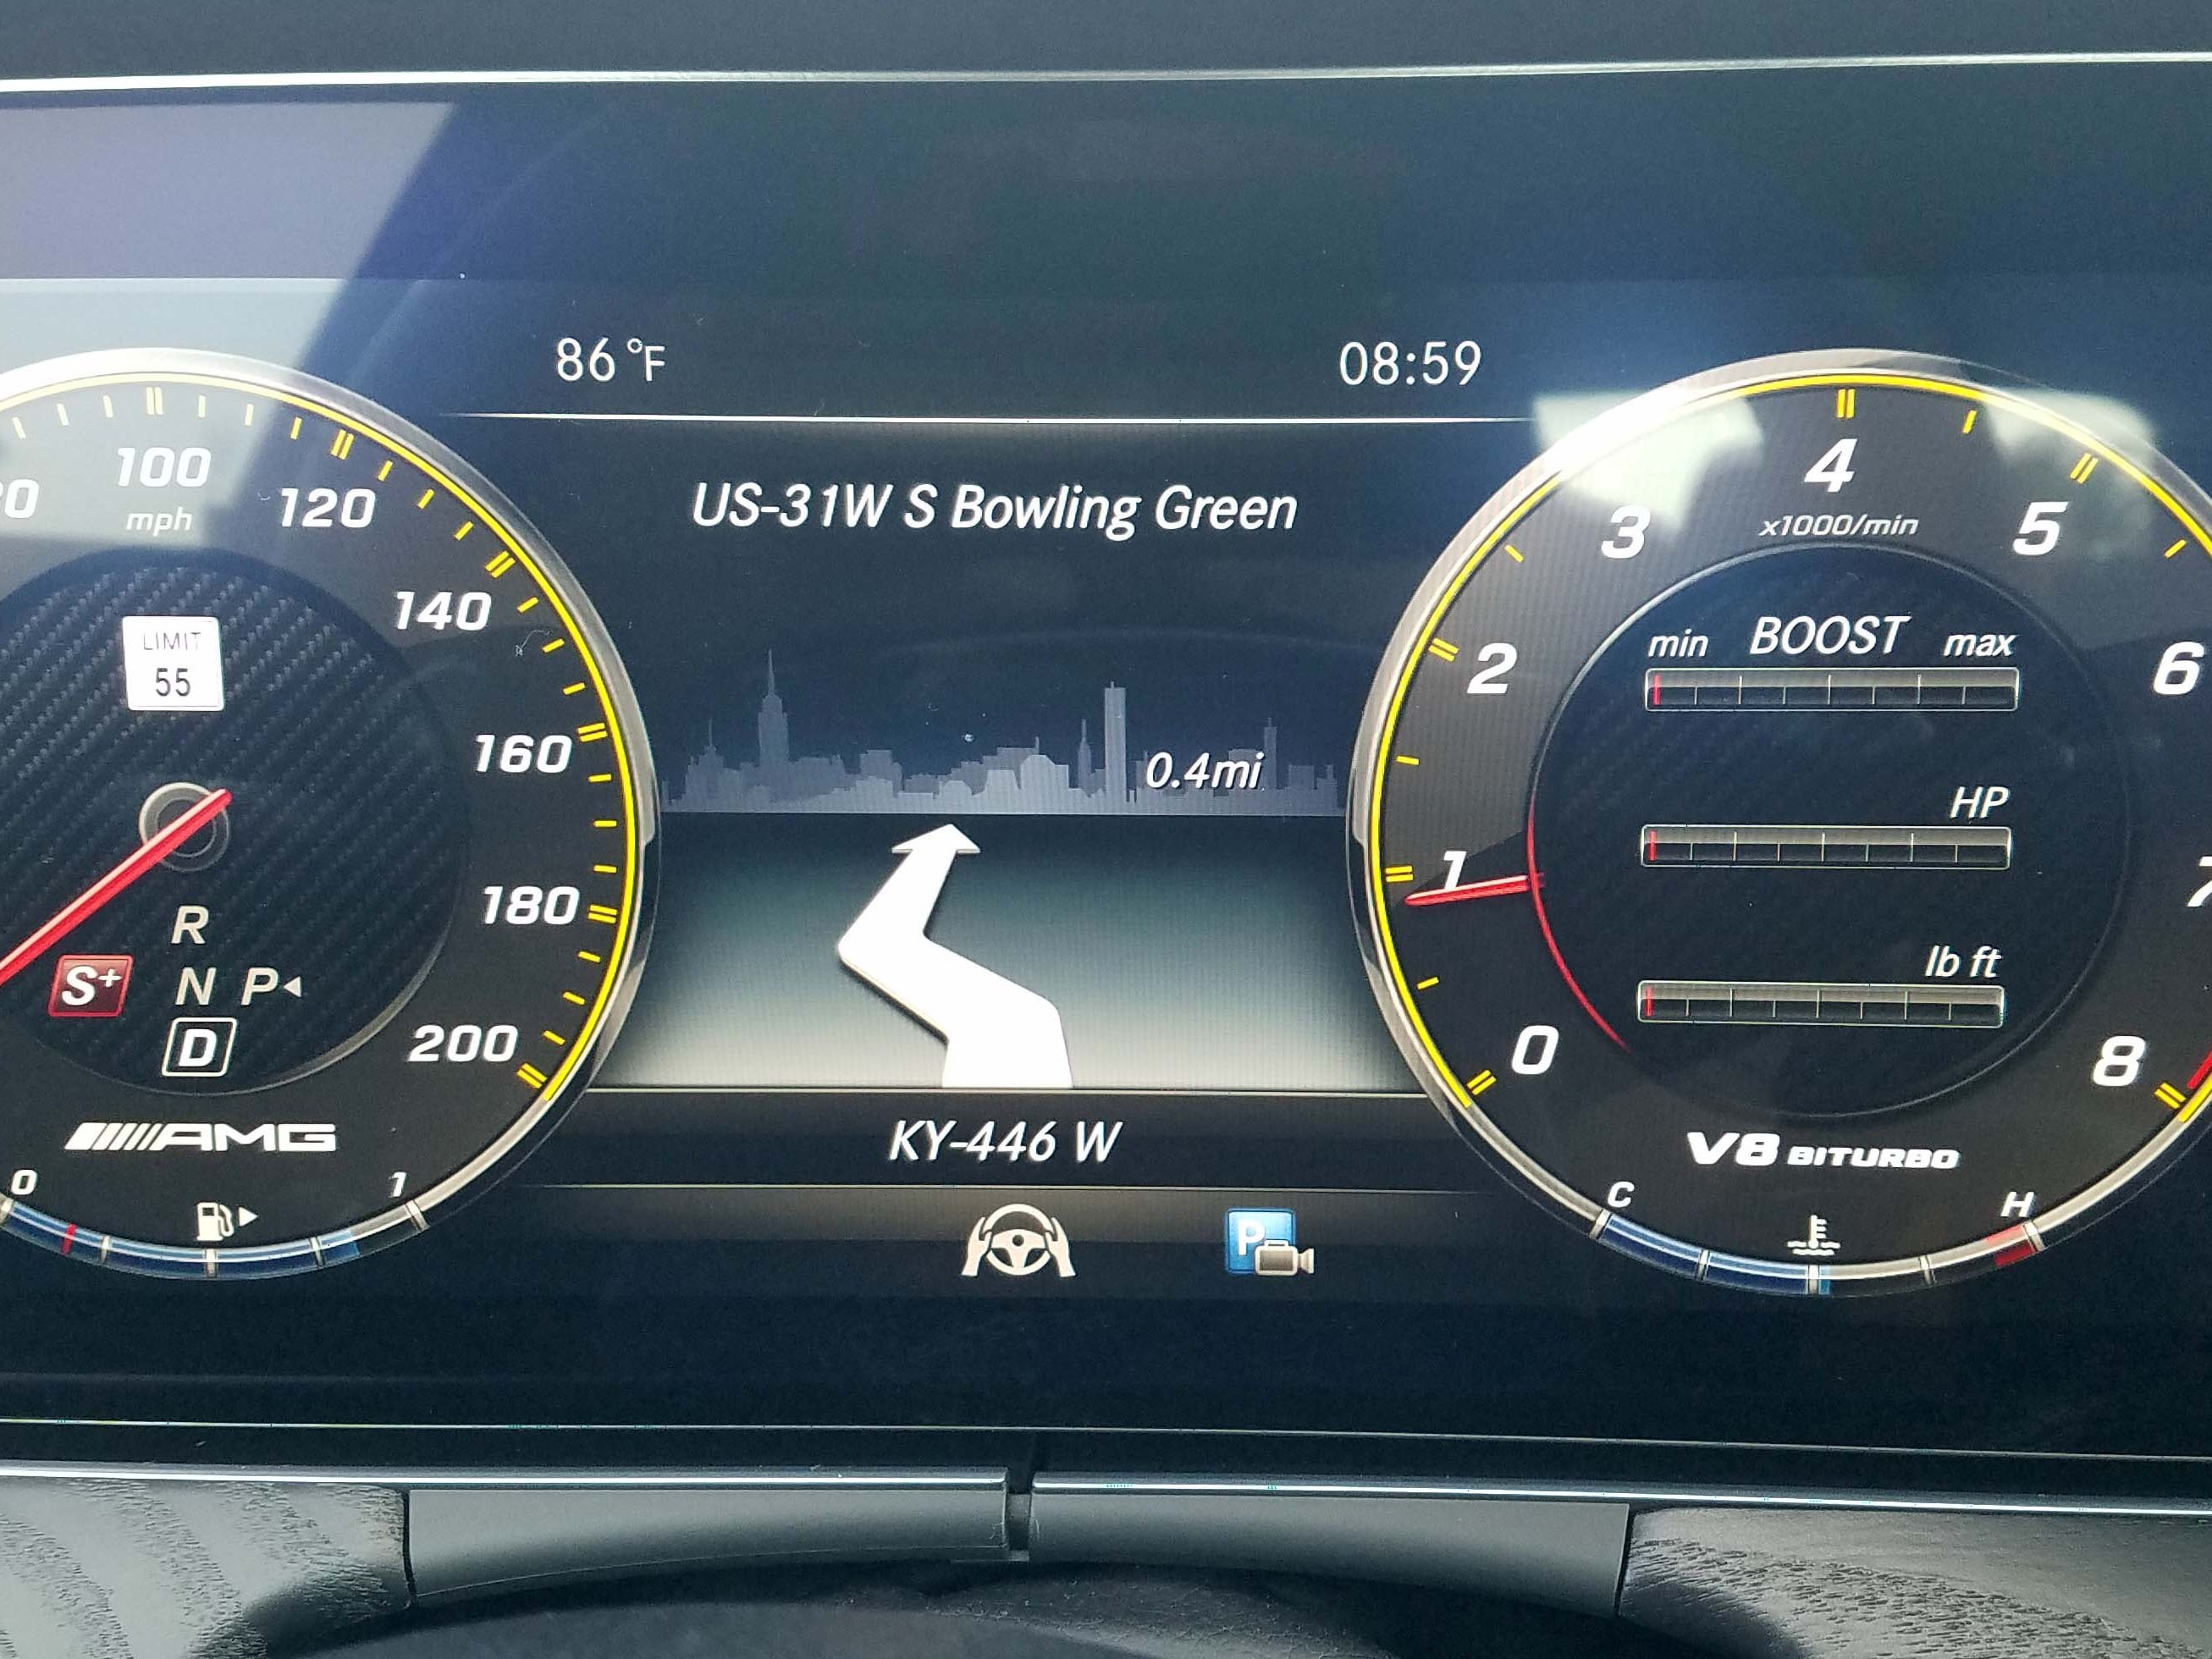 The Mercedes-AMG E63 S wagon comes with a state-of-the-art digital instrument display.